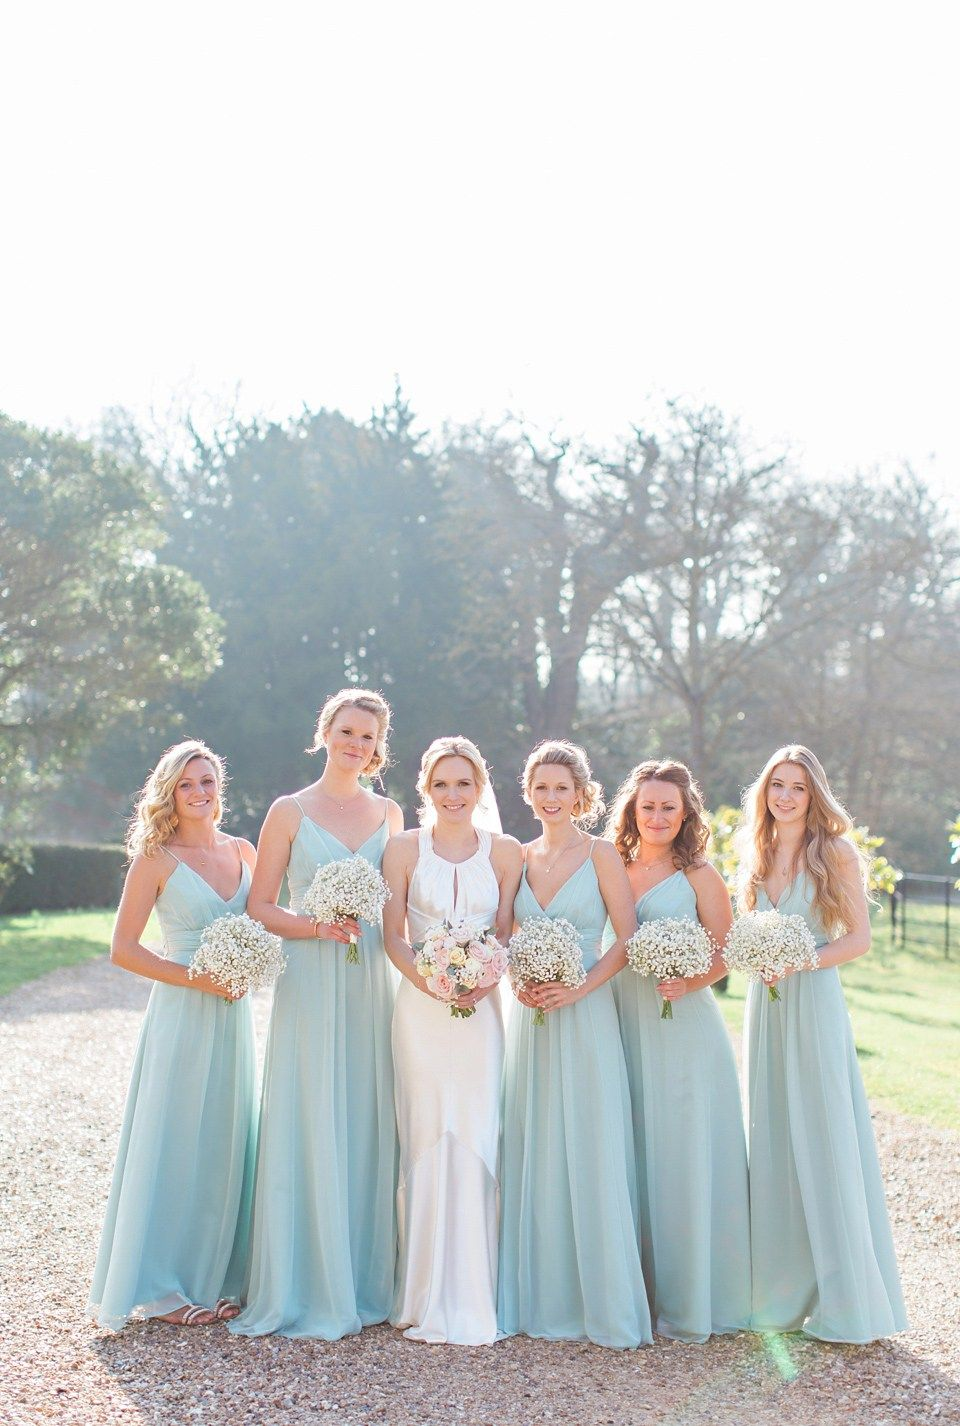 Amanda Wakely Elegance And Pastel Blooms For A Springtime Country ...